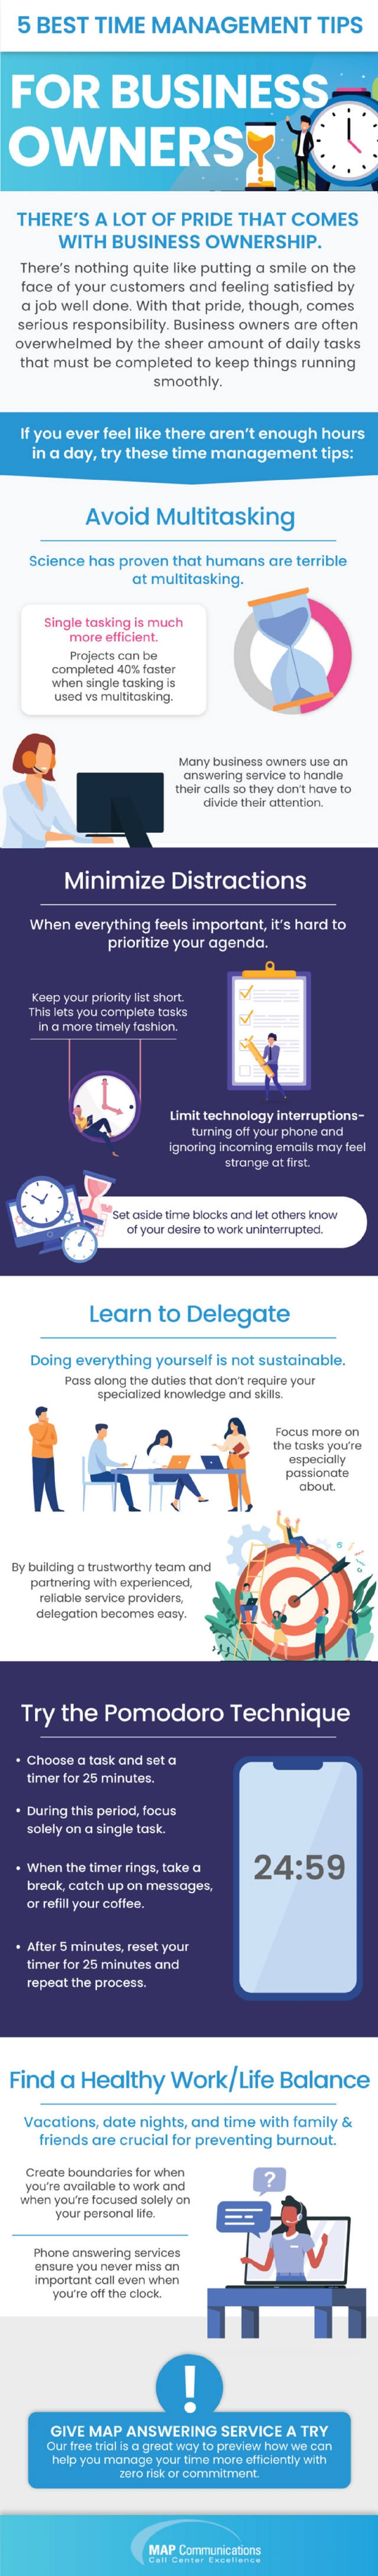 5-best-time-management-tips-for-business-owners-infographic